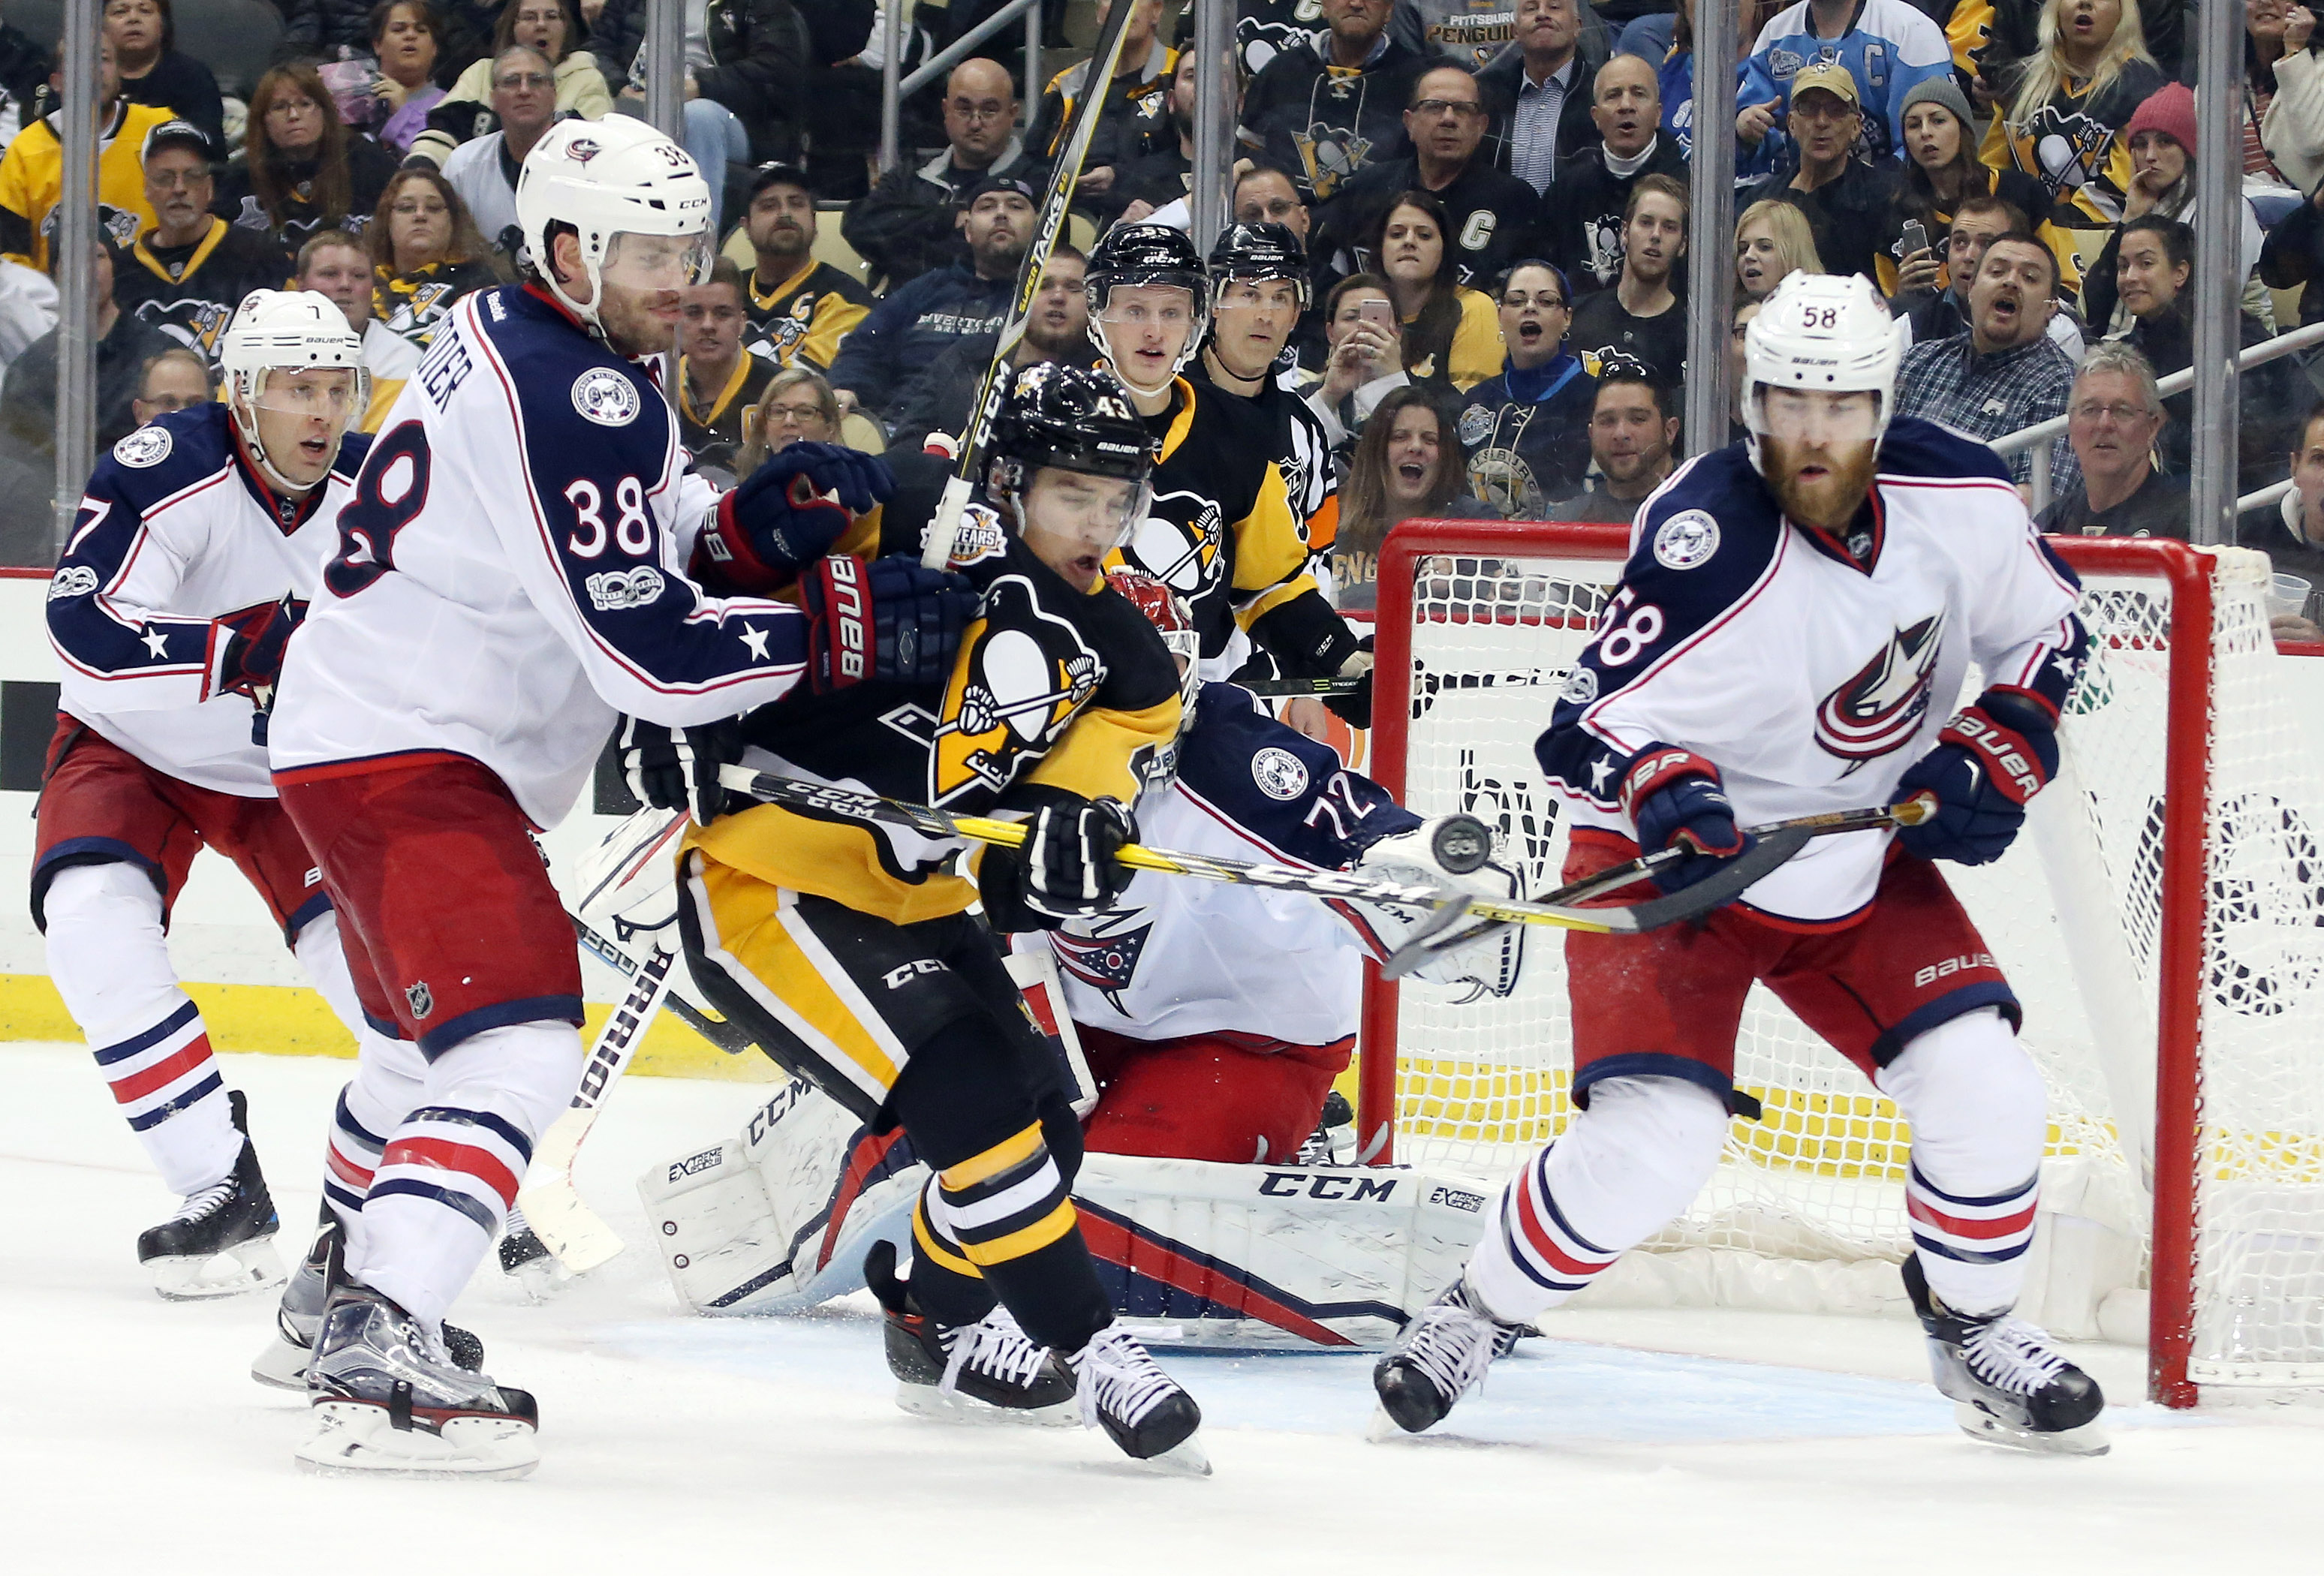 NHL playoffs 2017: Penguins vs. Blue Jackets TV schedule